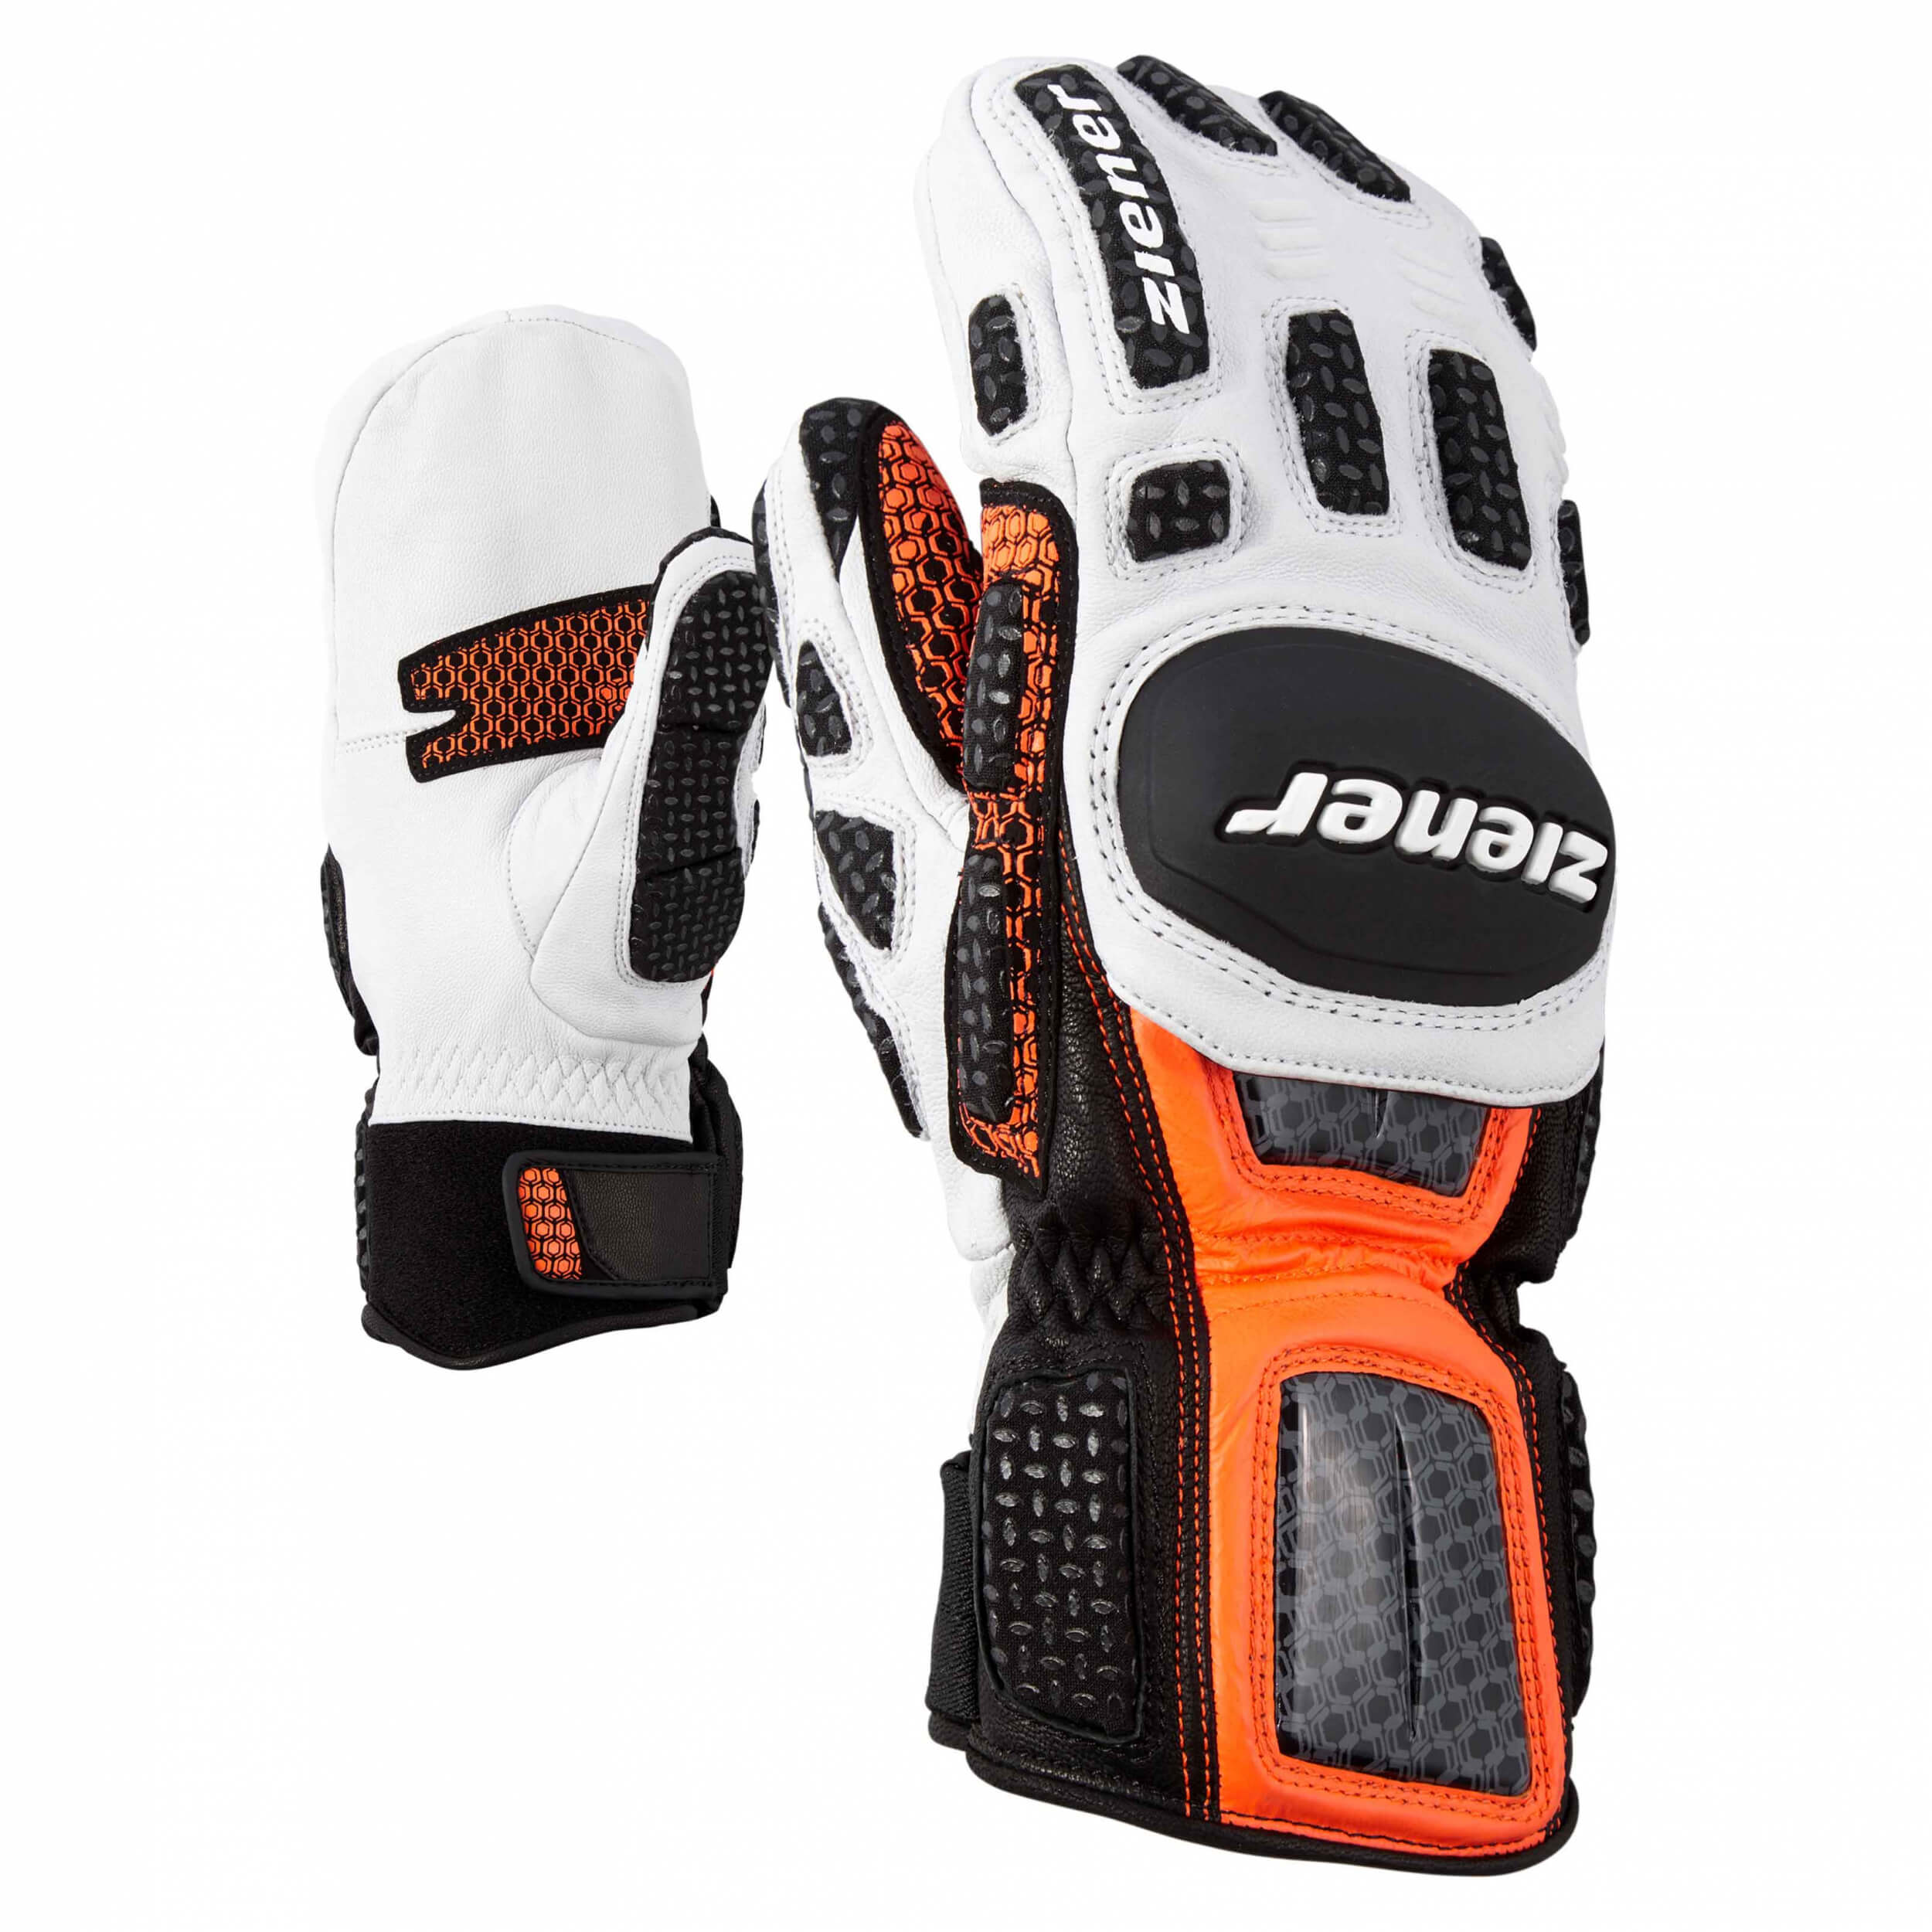 ZIENER Ski Race Handschuhe Giant Slalom MITTEN orange 738